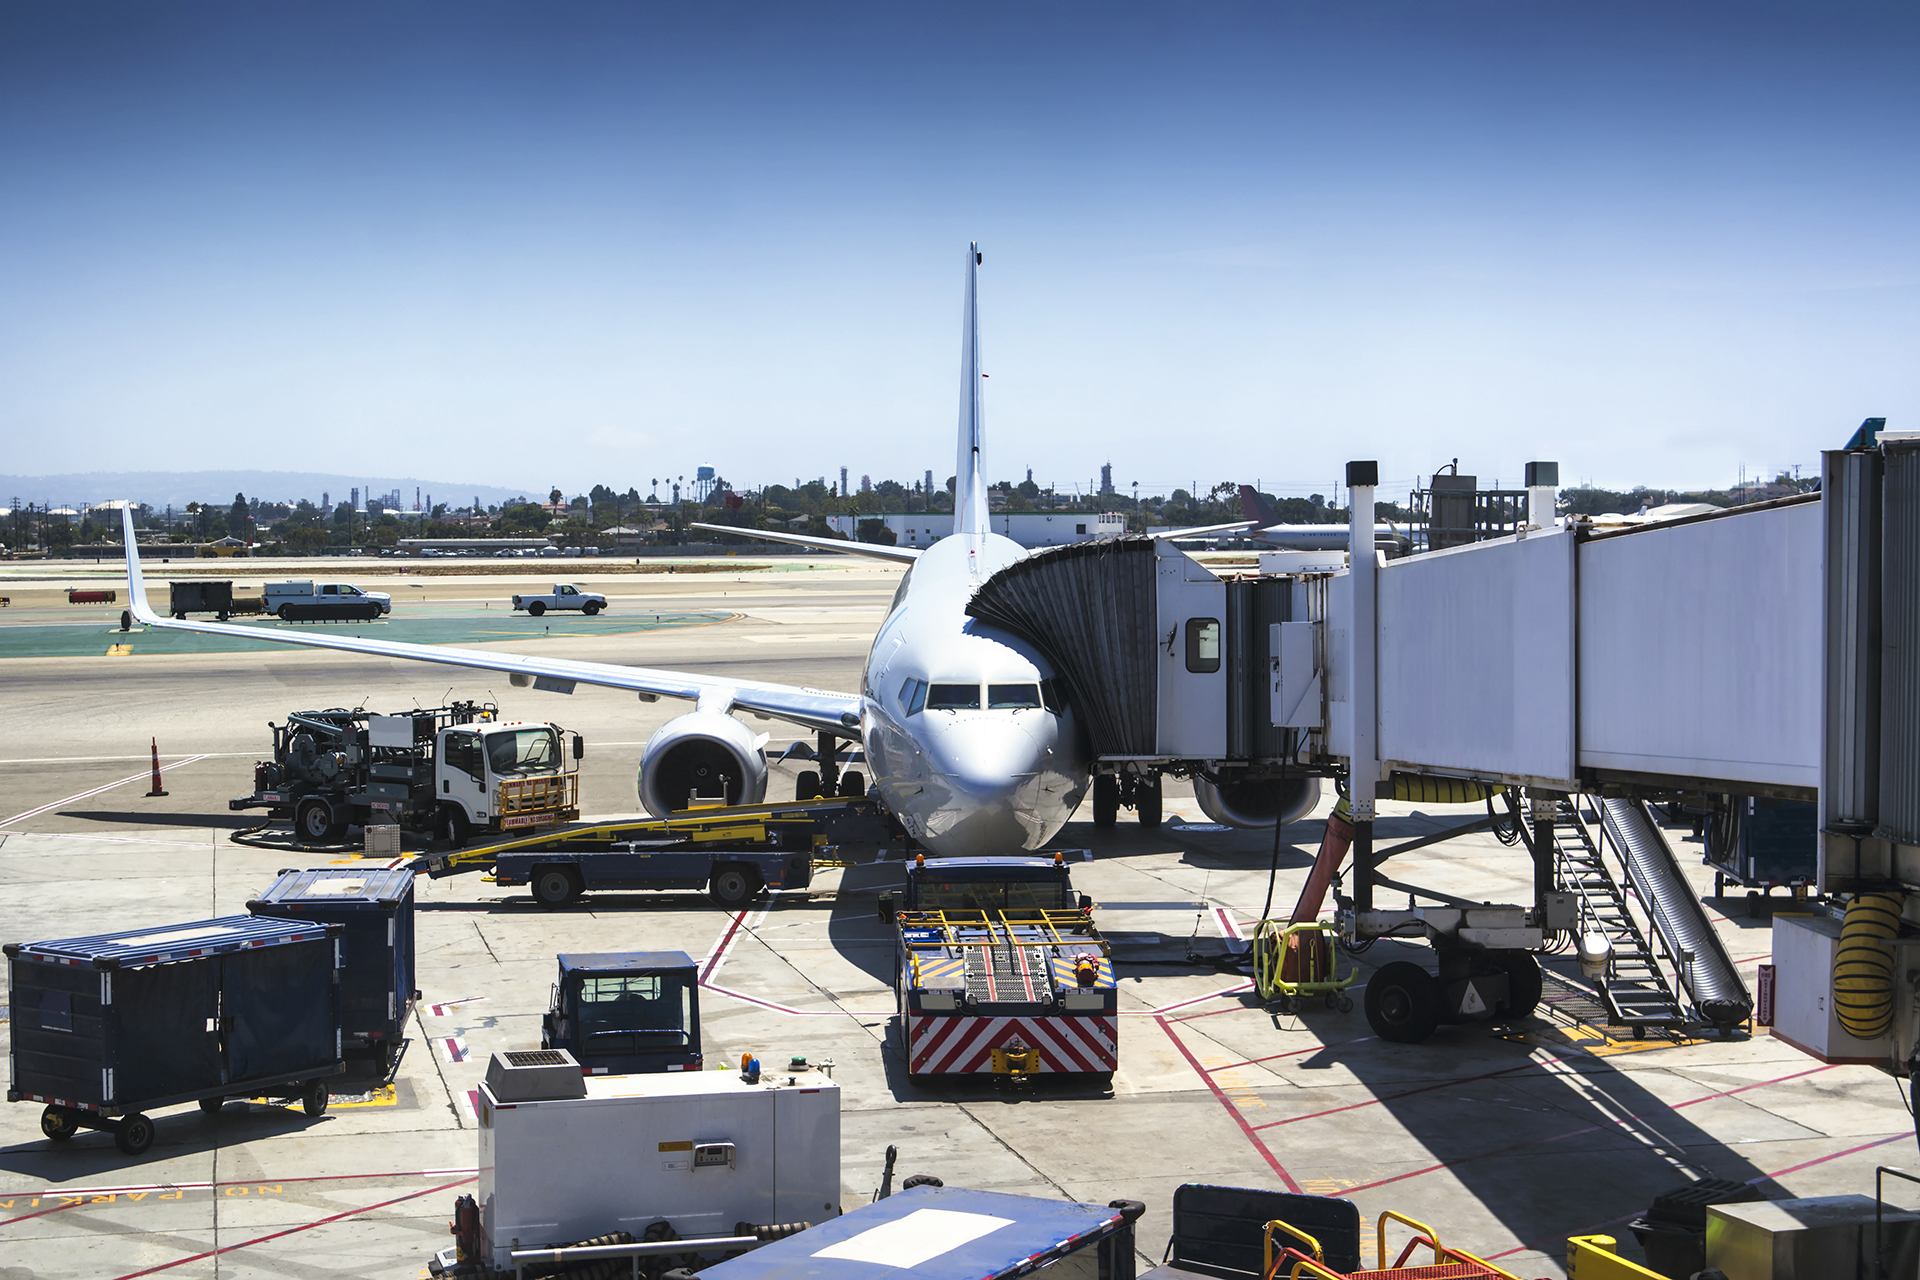 ACI: European airport passenger traffic growth slows in 1H